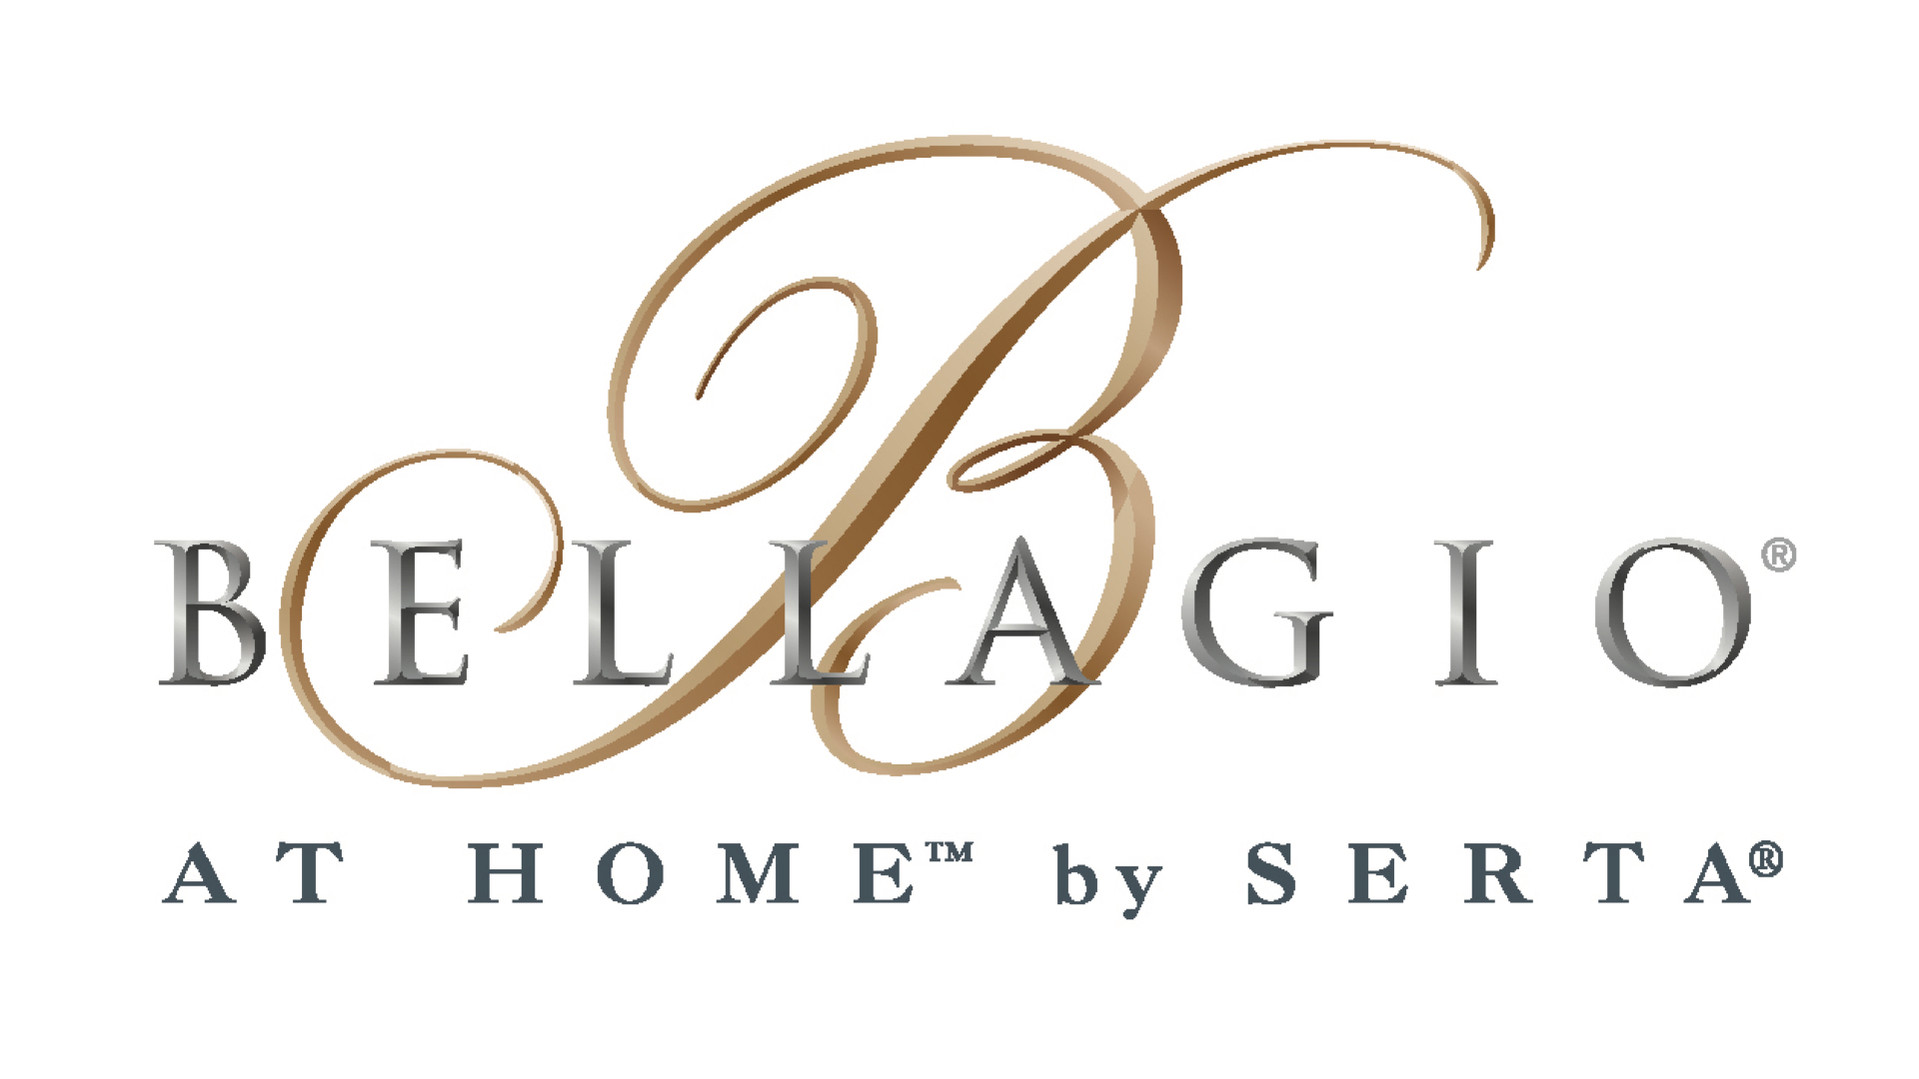 Mattress City Bellagio at Home by Serta